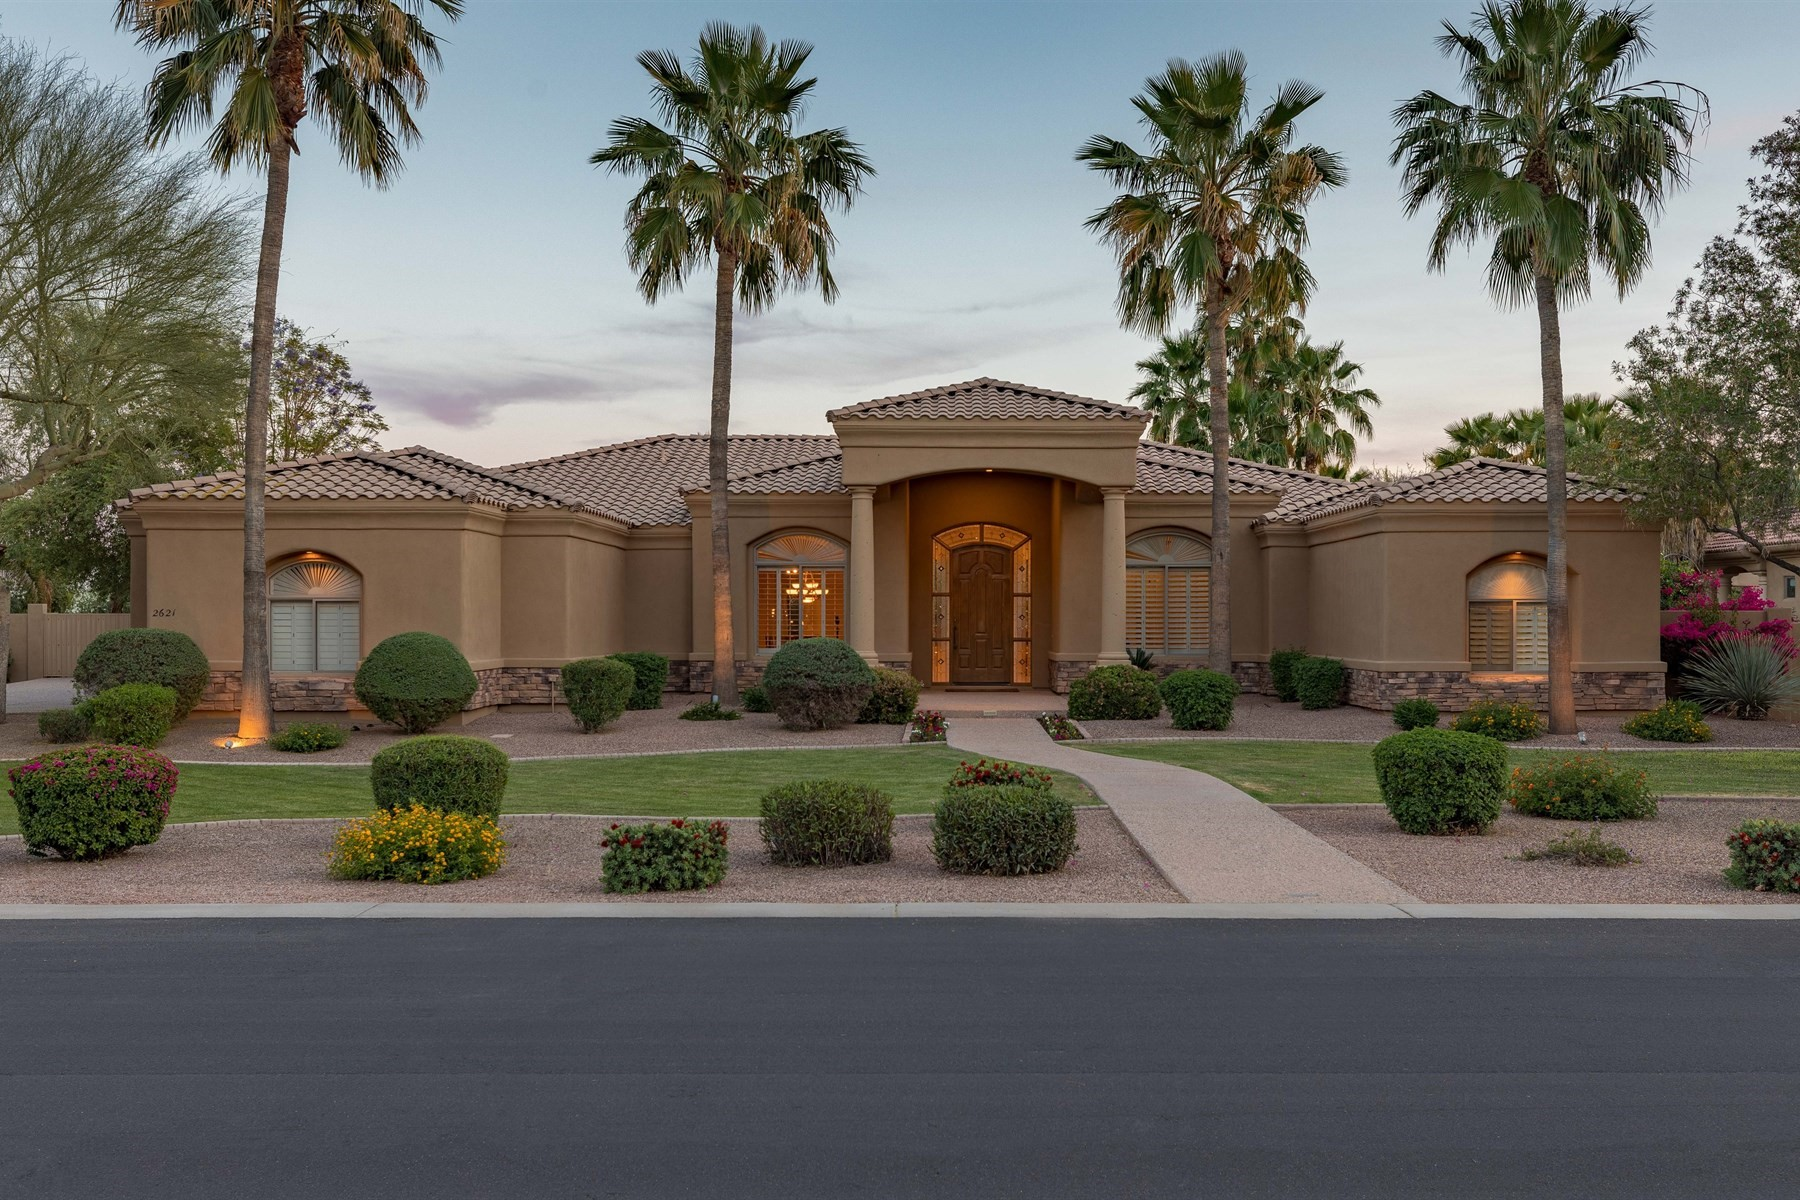 Single Family Home for Sale at Amazing home with incredible resort style backyard 2621 E Birchwood Pl Chandler, Arizona 85249 United States